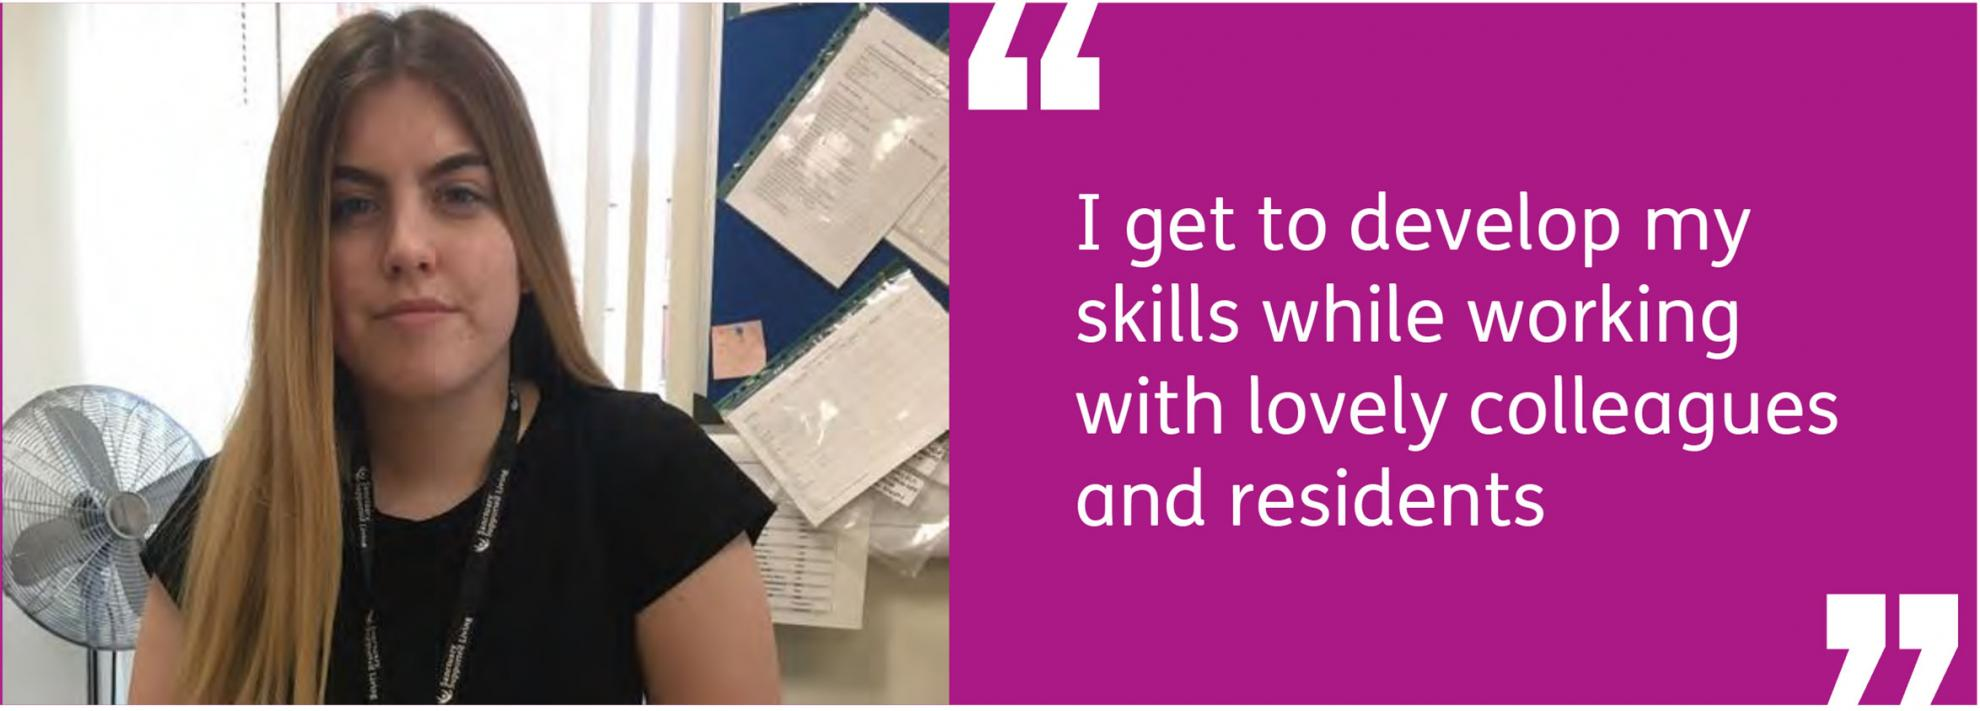 """Morgan Williams - """"I get to develop my skills while working with lovely colleagues and residents."""""""